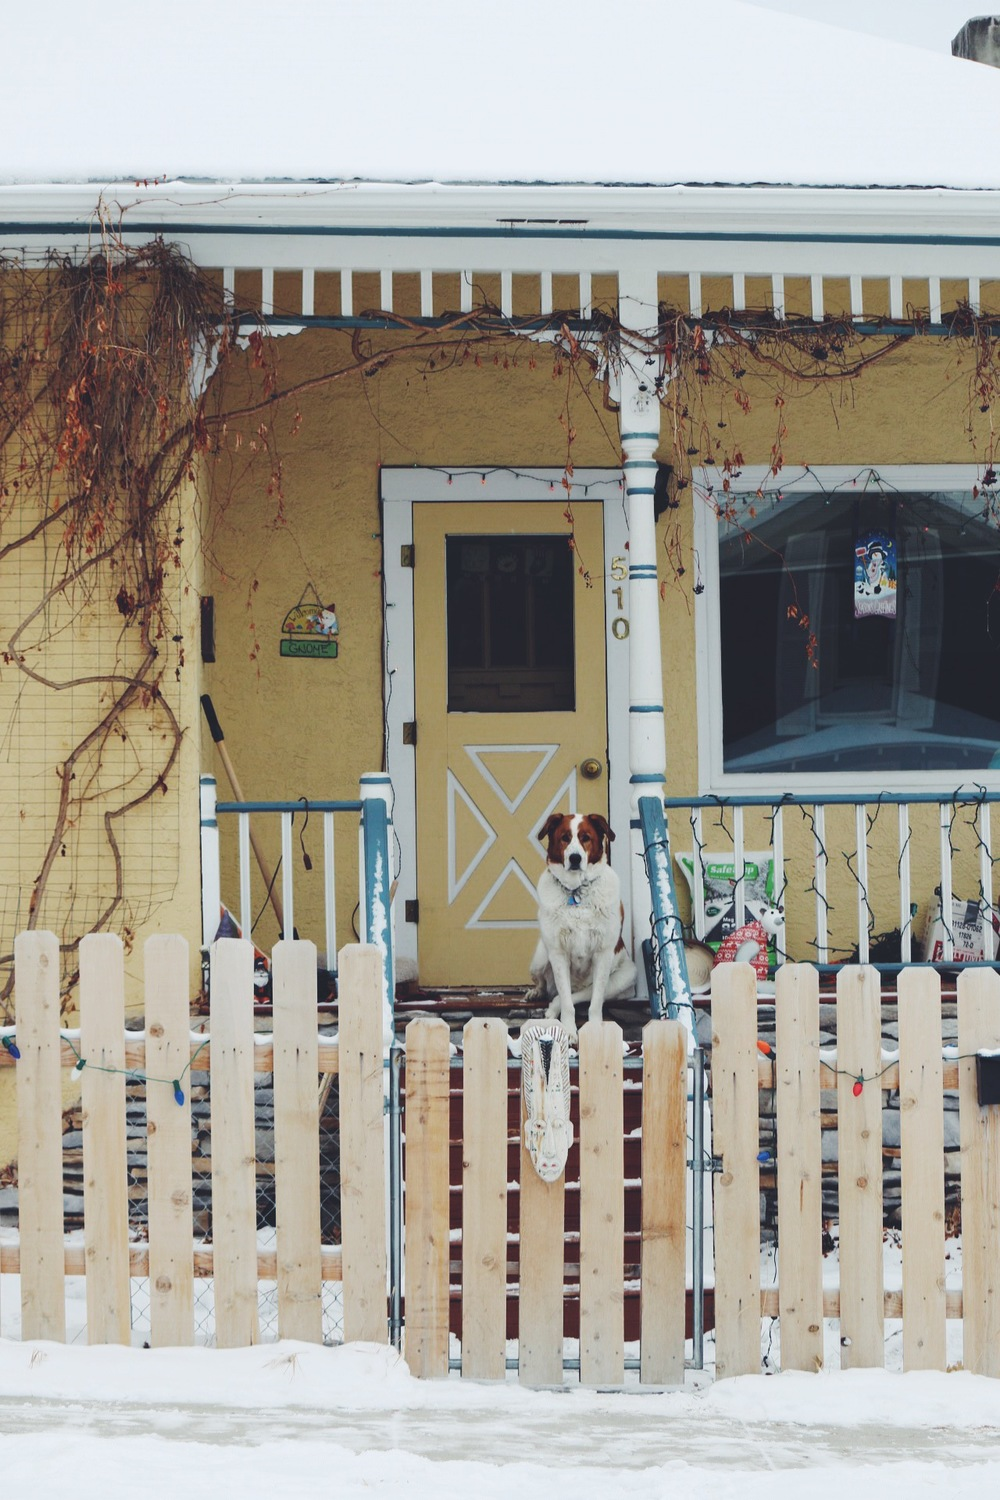 I made these photographs of houses in my hometown of Helena, Montana.